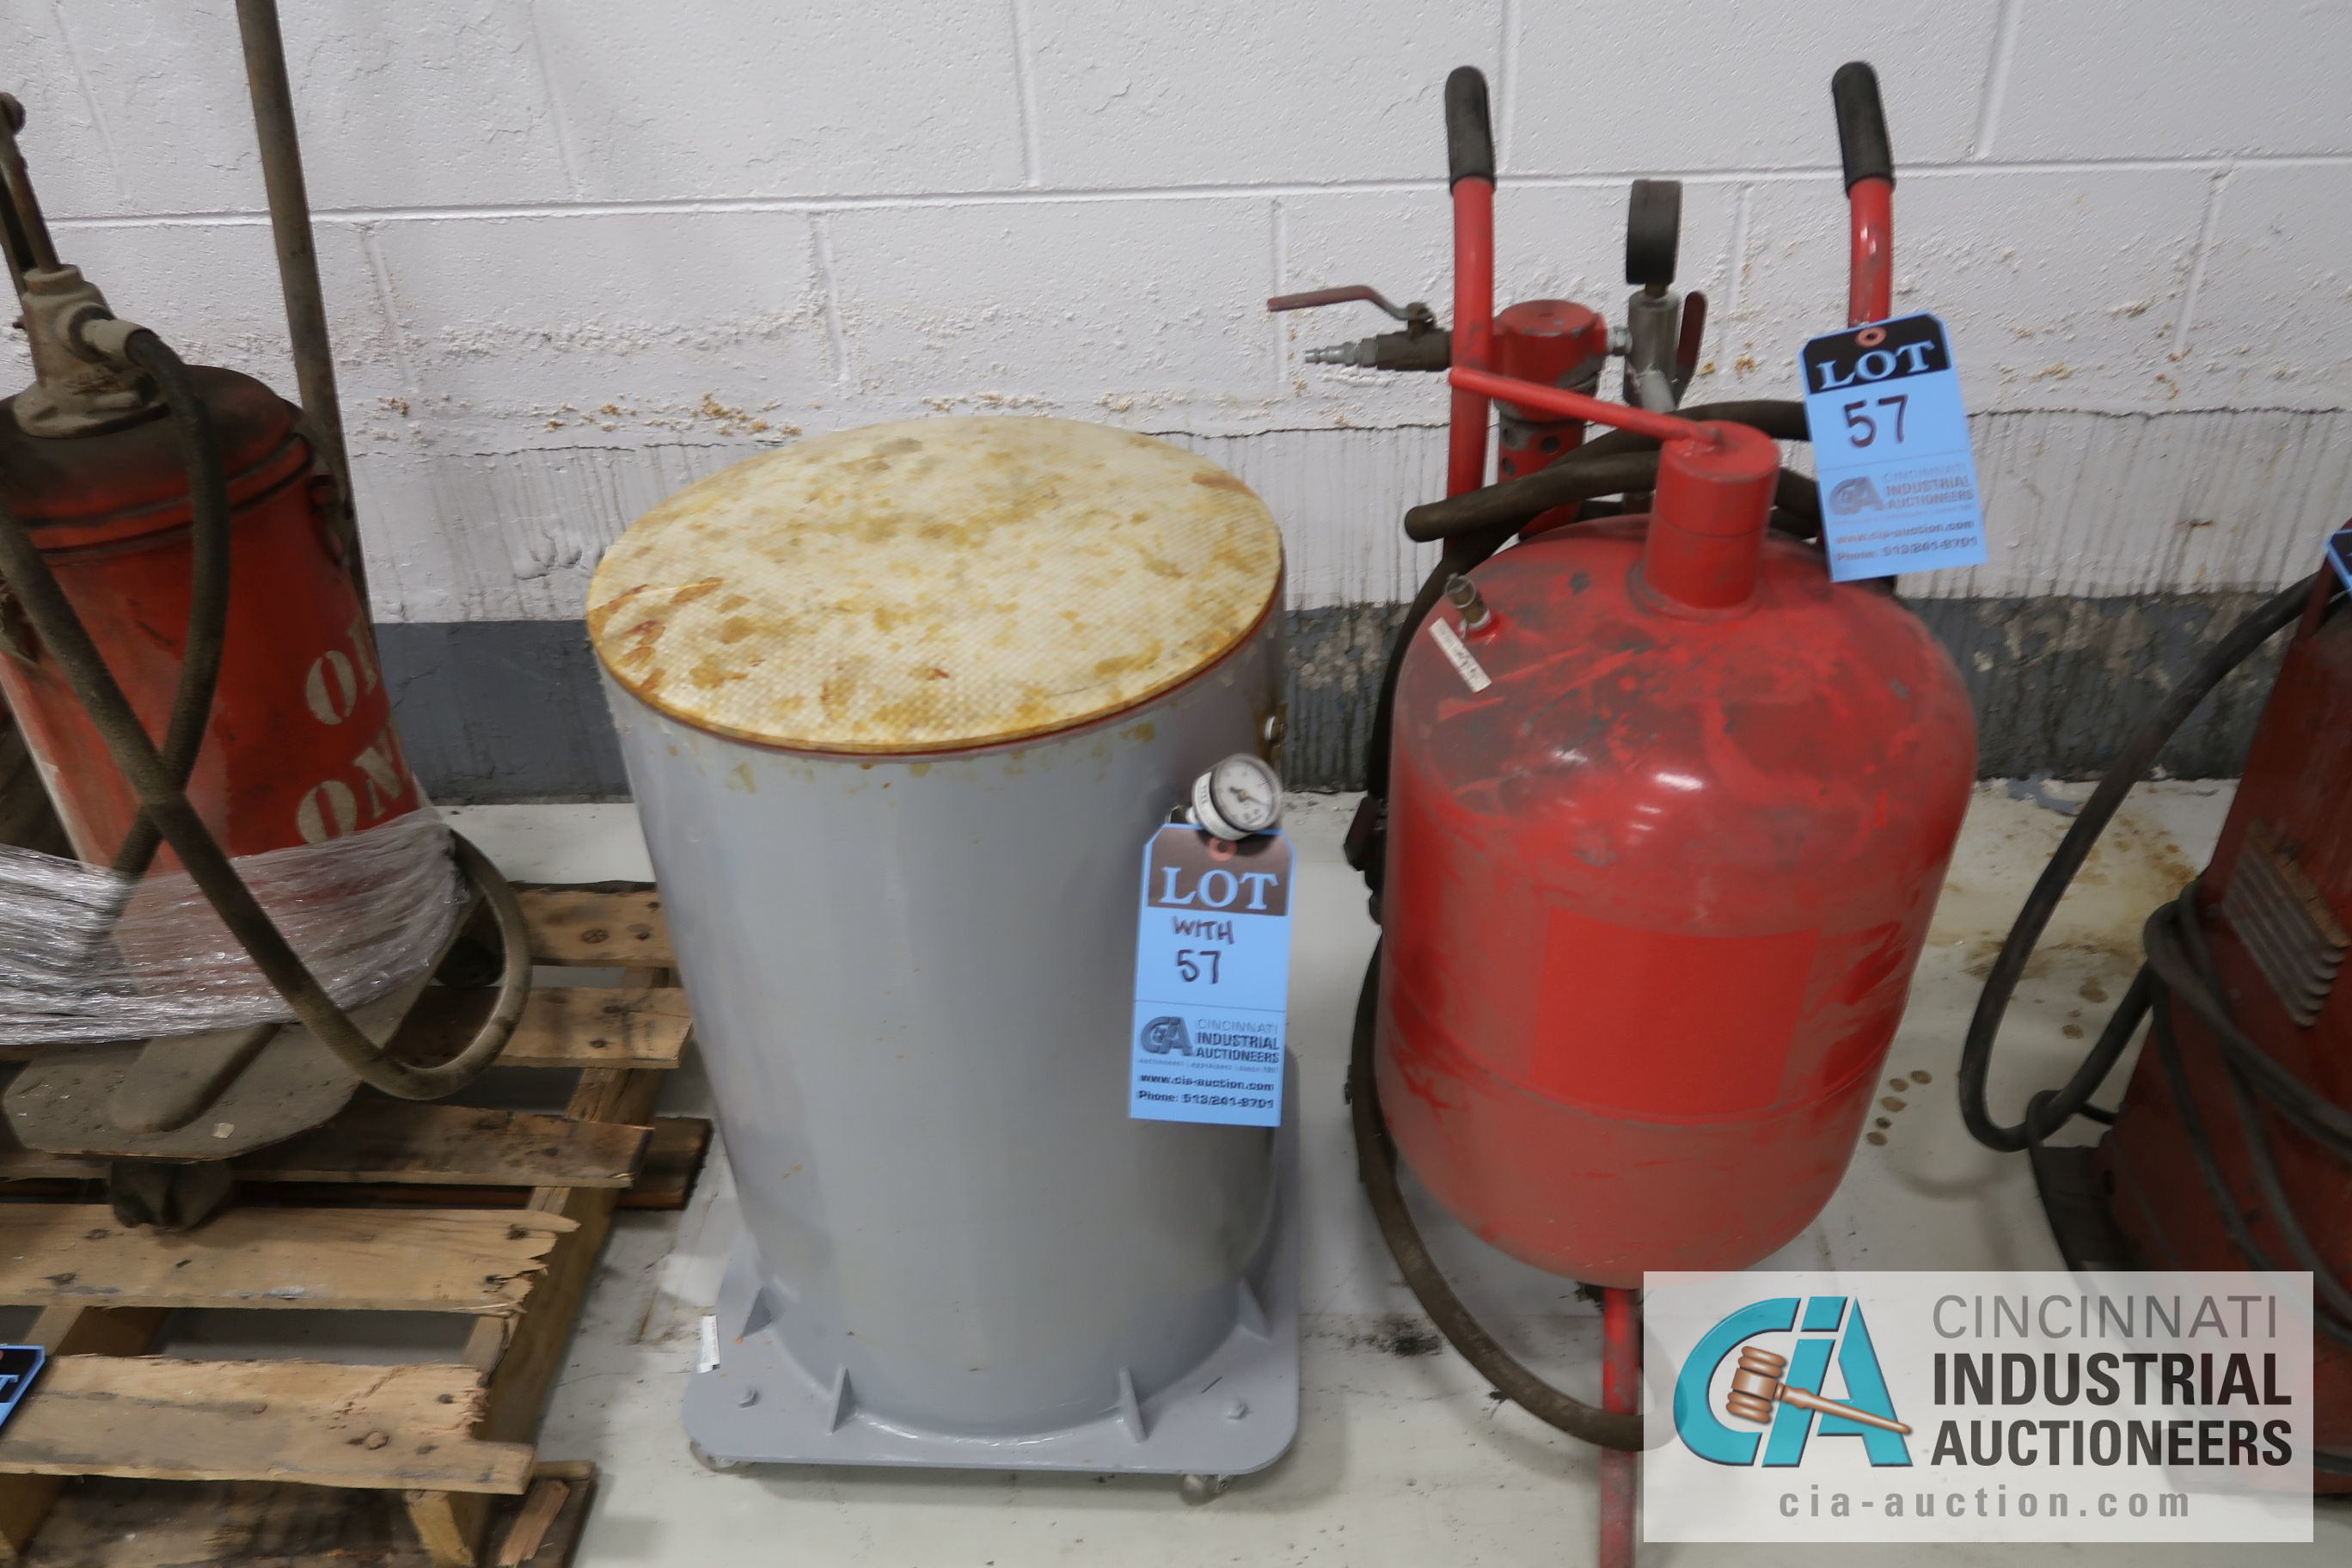 (LOT) MISCELLANEOUS - SAND BLAST POT, KETTLE, HYDRAULIC OIL PUMPS, JUSTRITE OILY WASTE CAN, - Image 2 of 4